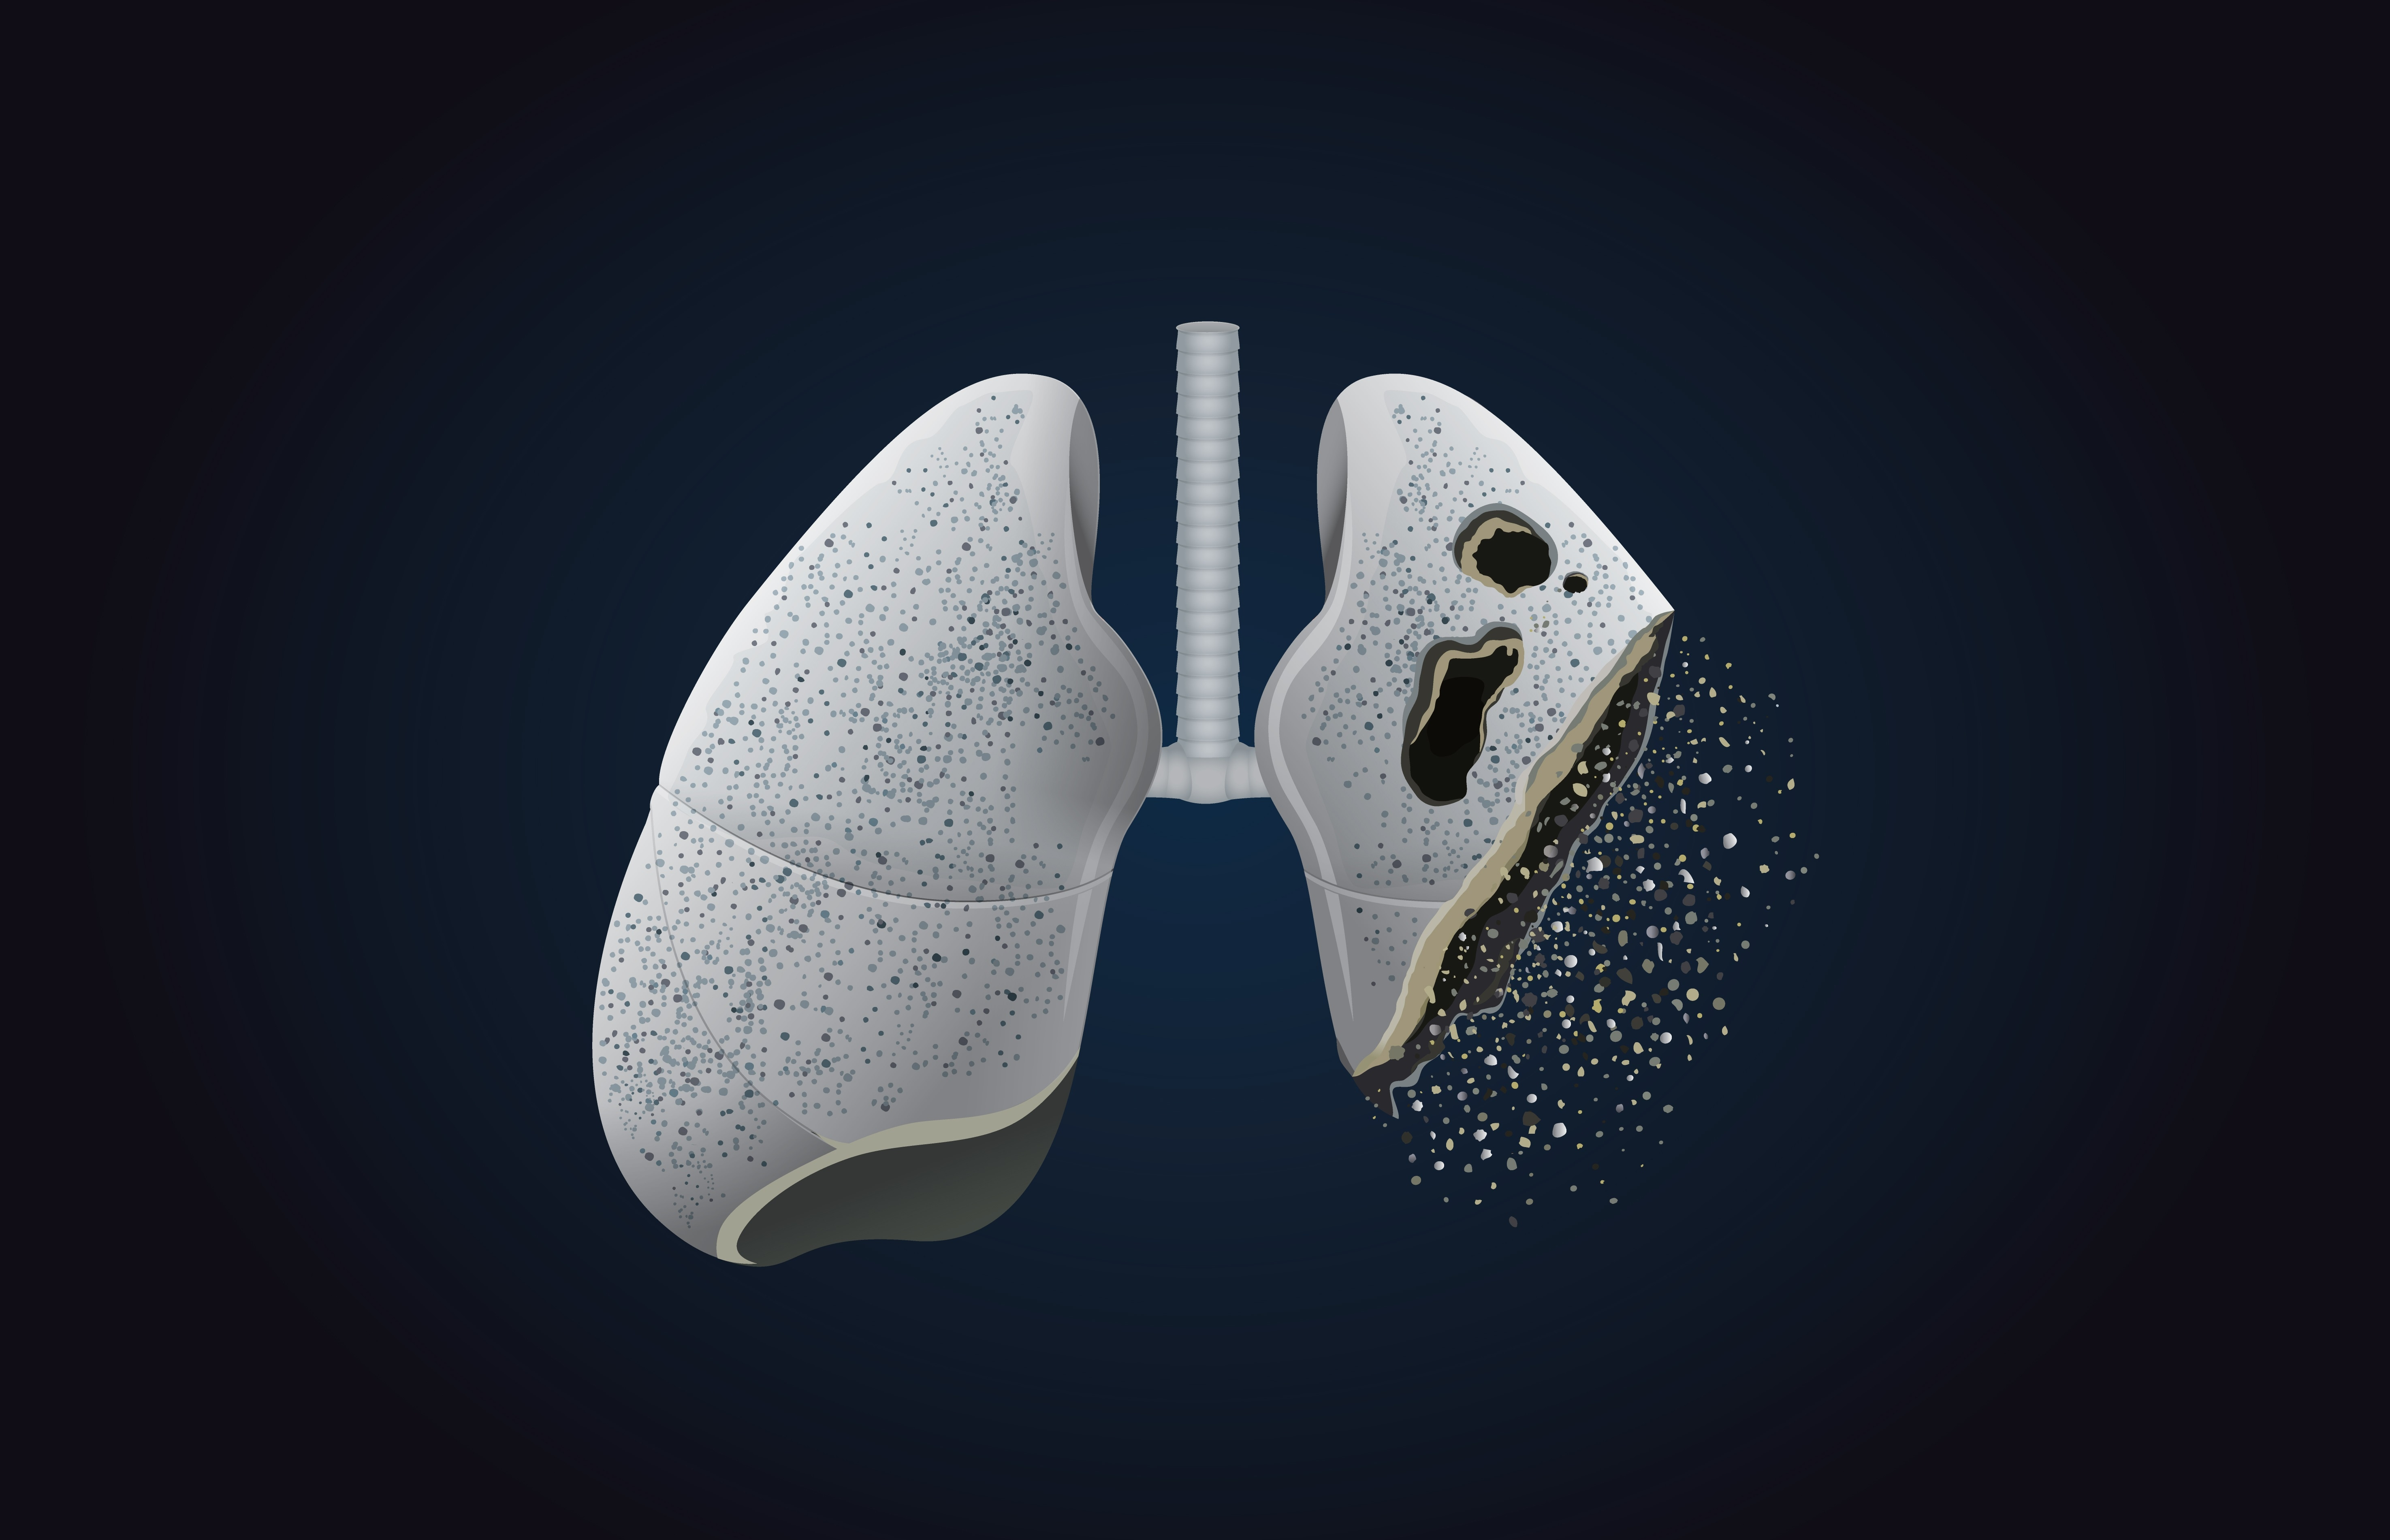 Woman has developed rare form of lung metal-scarring from vaping